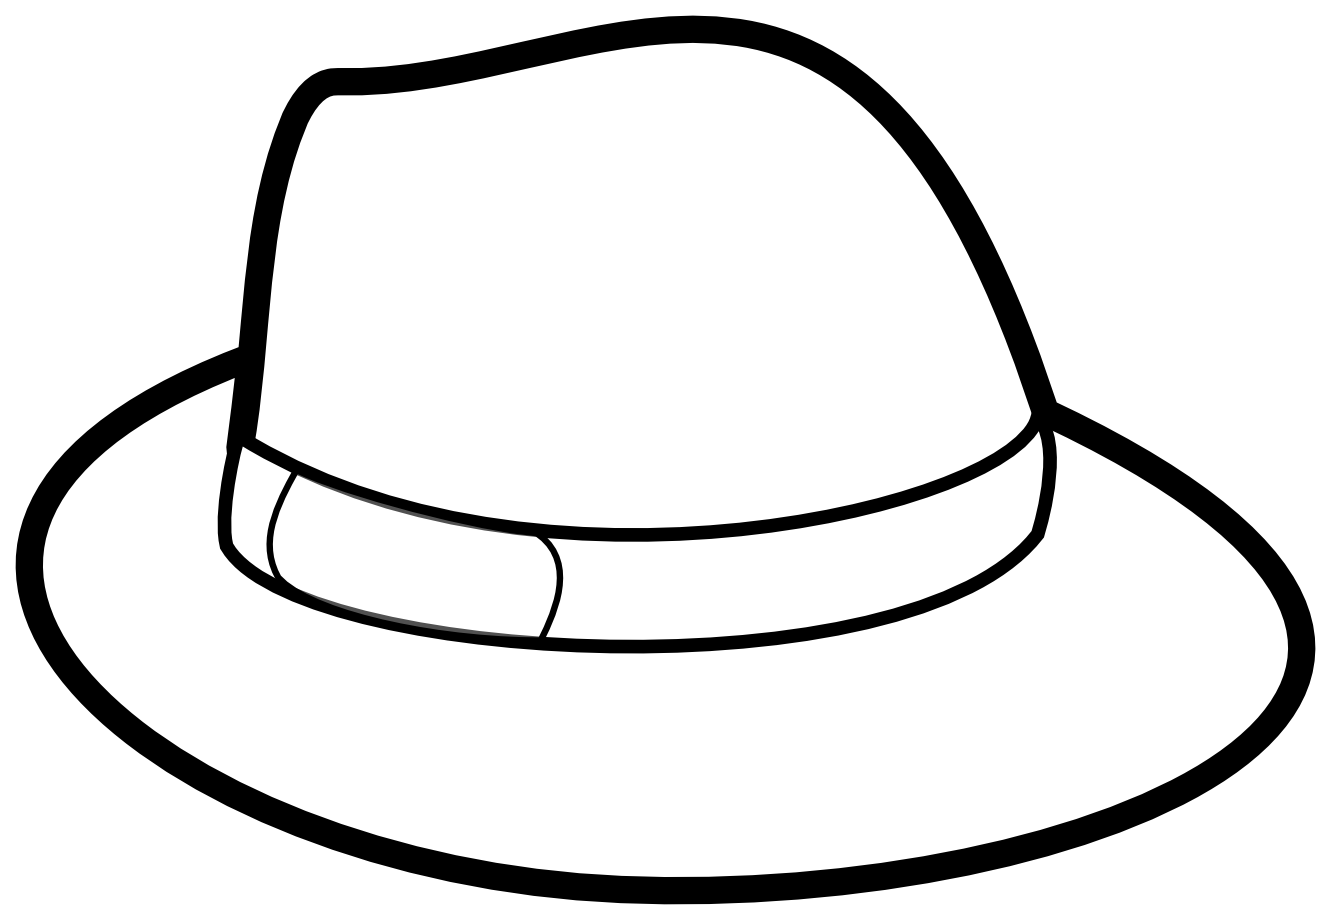 Hat Coloring Pages 19 Png 1331 920 Coloring Pages Pictures Of Hats Coloring Pages For Kids